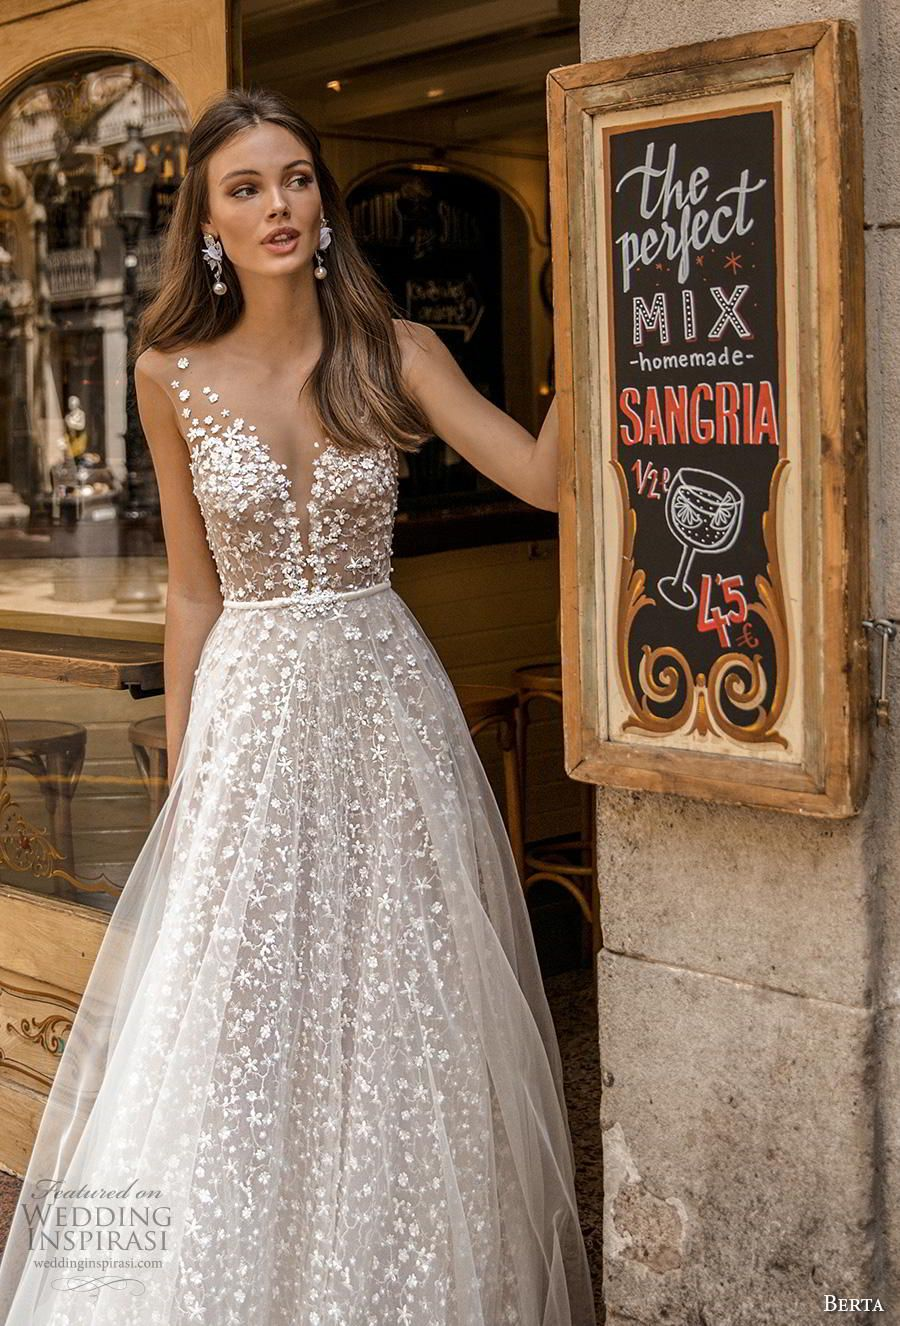 Muse by berta ucbarcelonaud wedding dresses the beauty and the